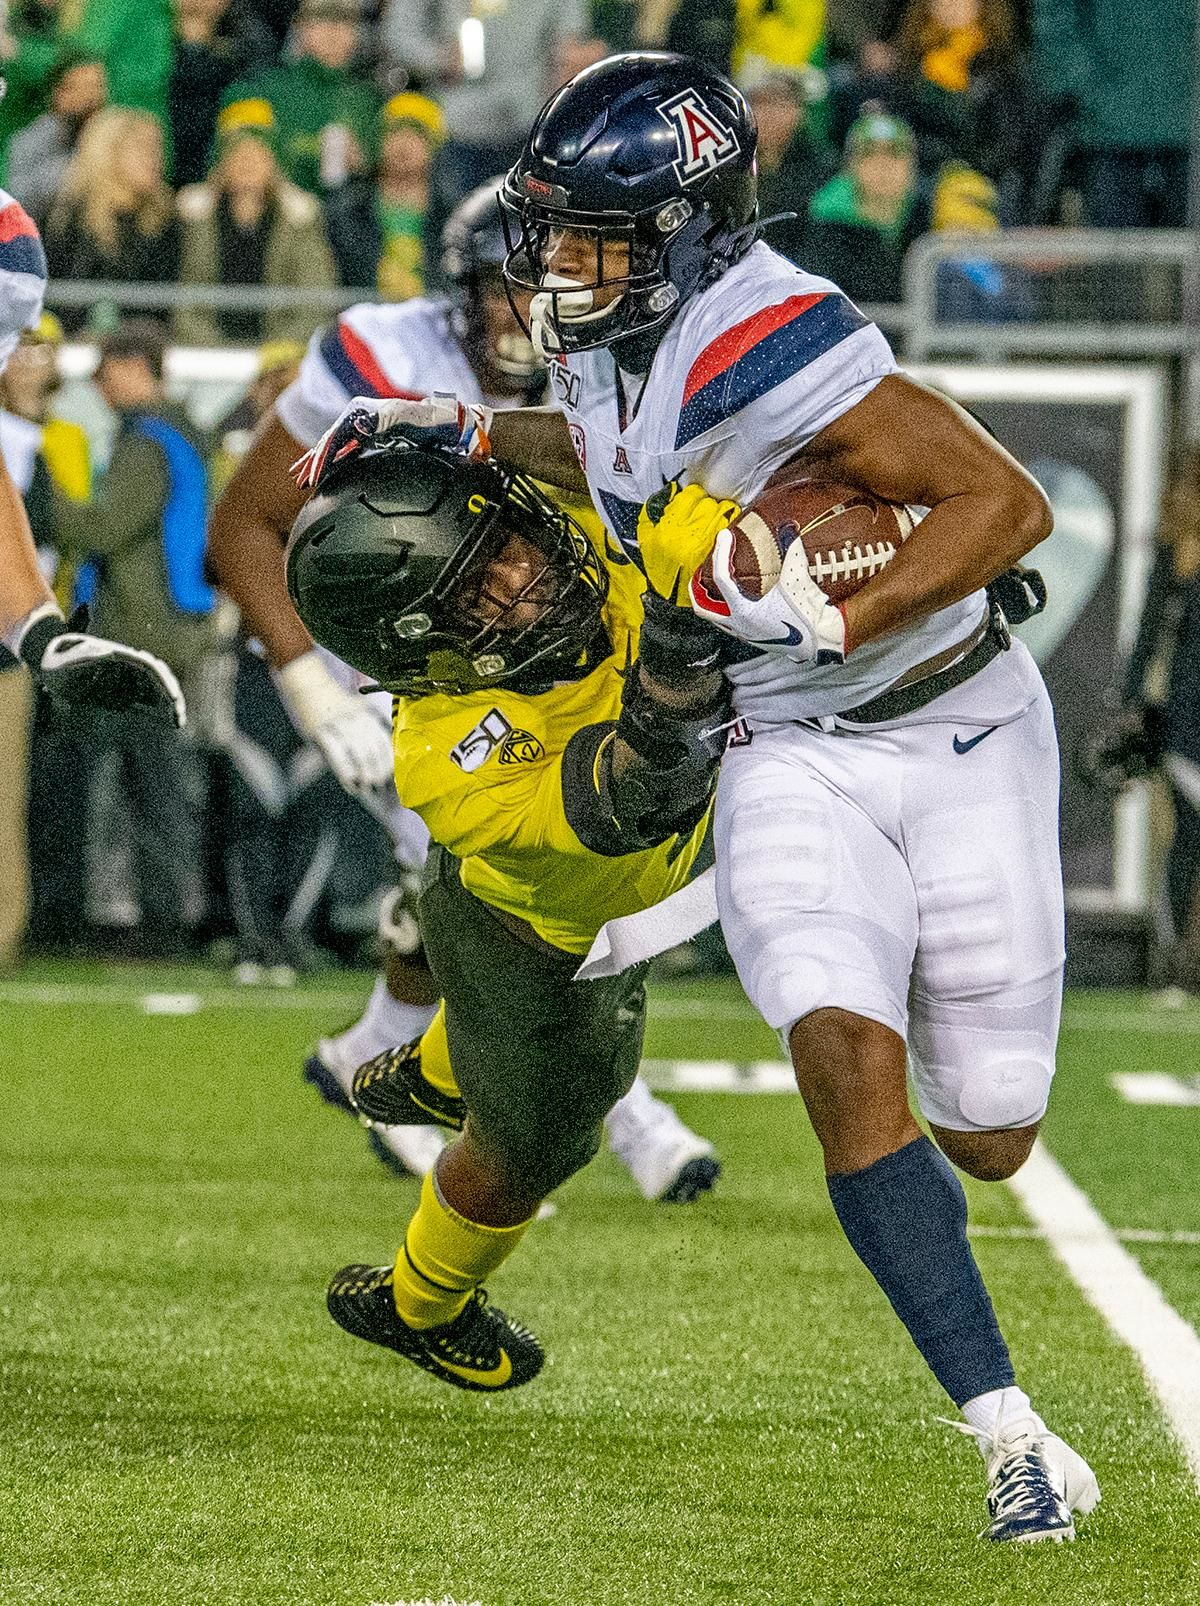 Oregon's defensive end Kayvon Thibodeaux, #5, reaches out and grabs Arizona's quaterback Khalil Tate, #14, for a sack and loss of yards. The University of Oregon Ducks beat the University of Arizona Wildcats 34 - 6 home at Autzen Stadium. Oregon's Quarterback Justin Herbert threw for 333 yards and four touchdowns. He surpasses 10,000 career passing yards in his senior year. Oregon's wide receiver Juwan Johnson caught 5 receptions for 93 yards along with one touchdown. The Oregon defense sacked Arizona's quarterback's for a total of six times. With the win, the Ducks clinch the PAC 12 North and will head to the PAC 12 Championship on December 6th 2019.  Photo by Jeffrey Price